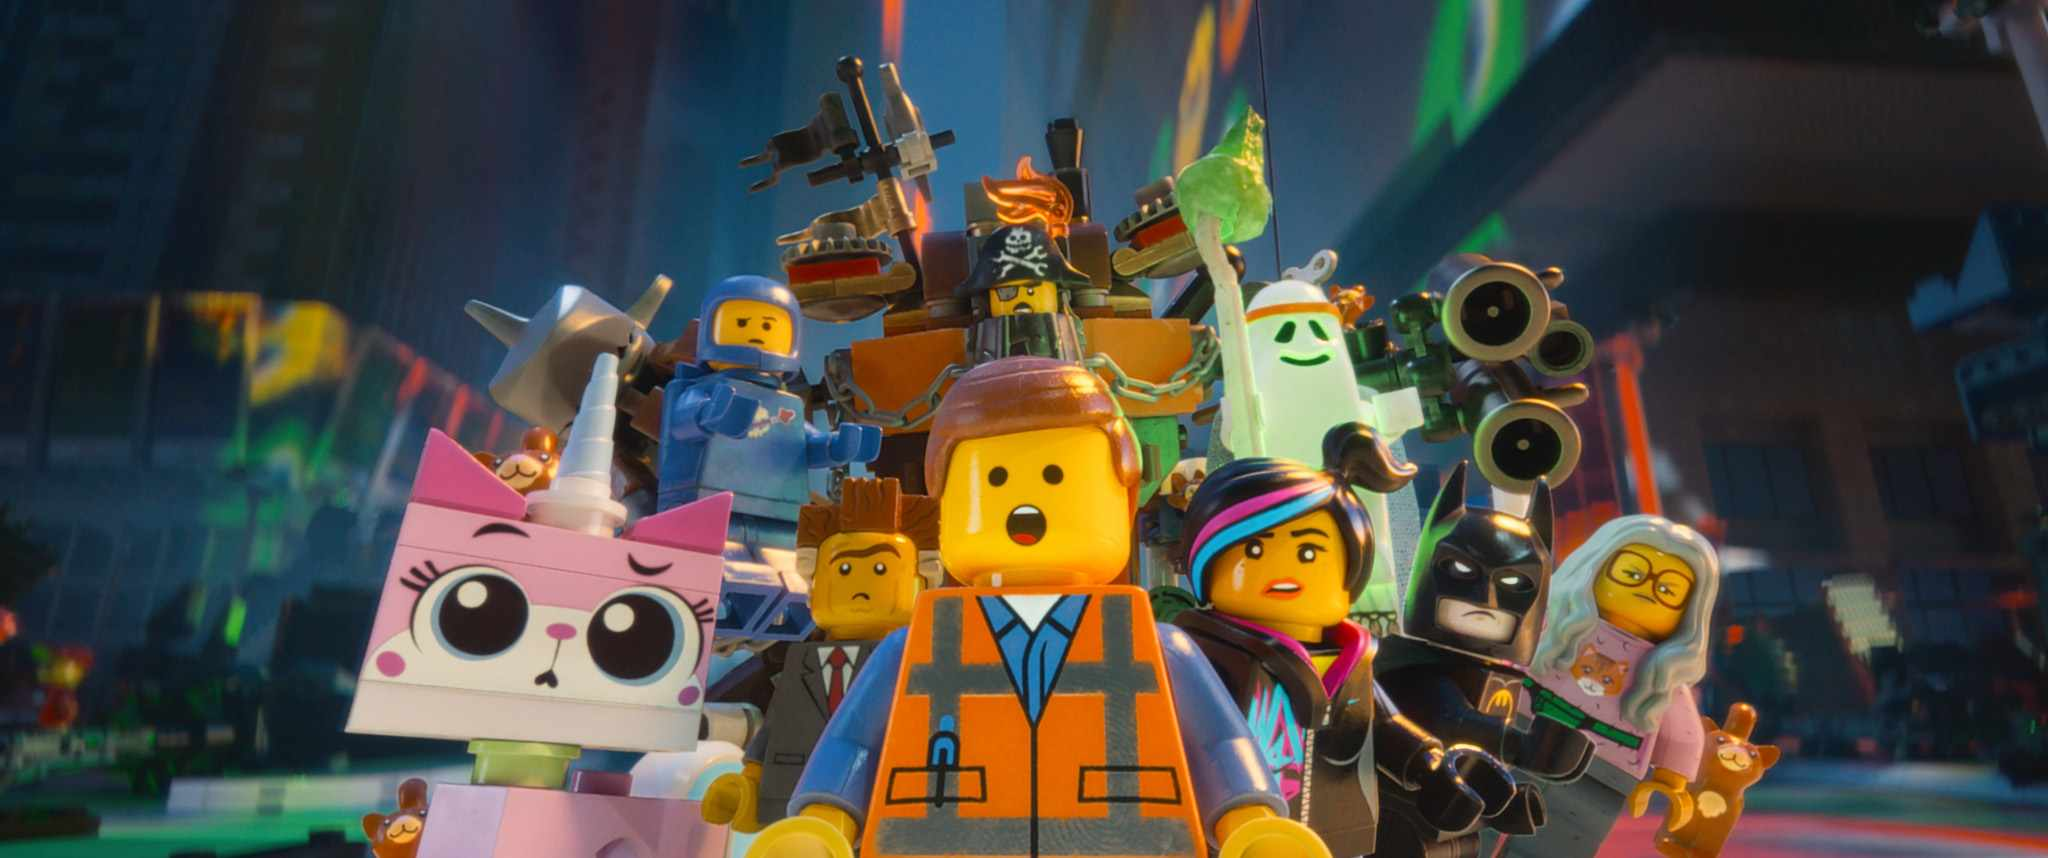 the-lego-movie-review_51981